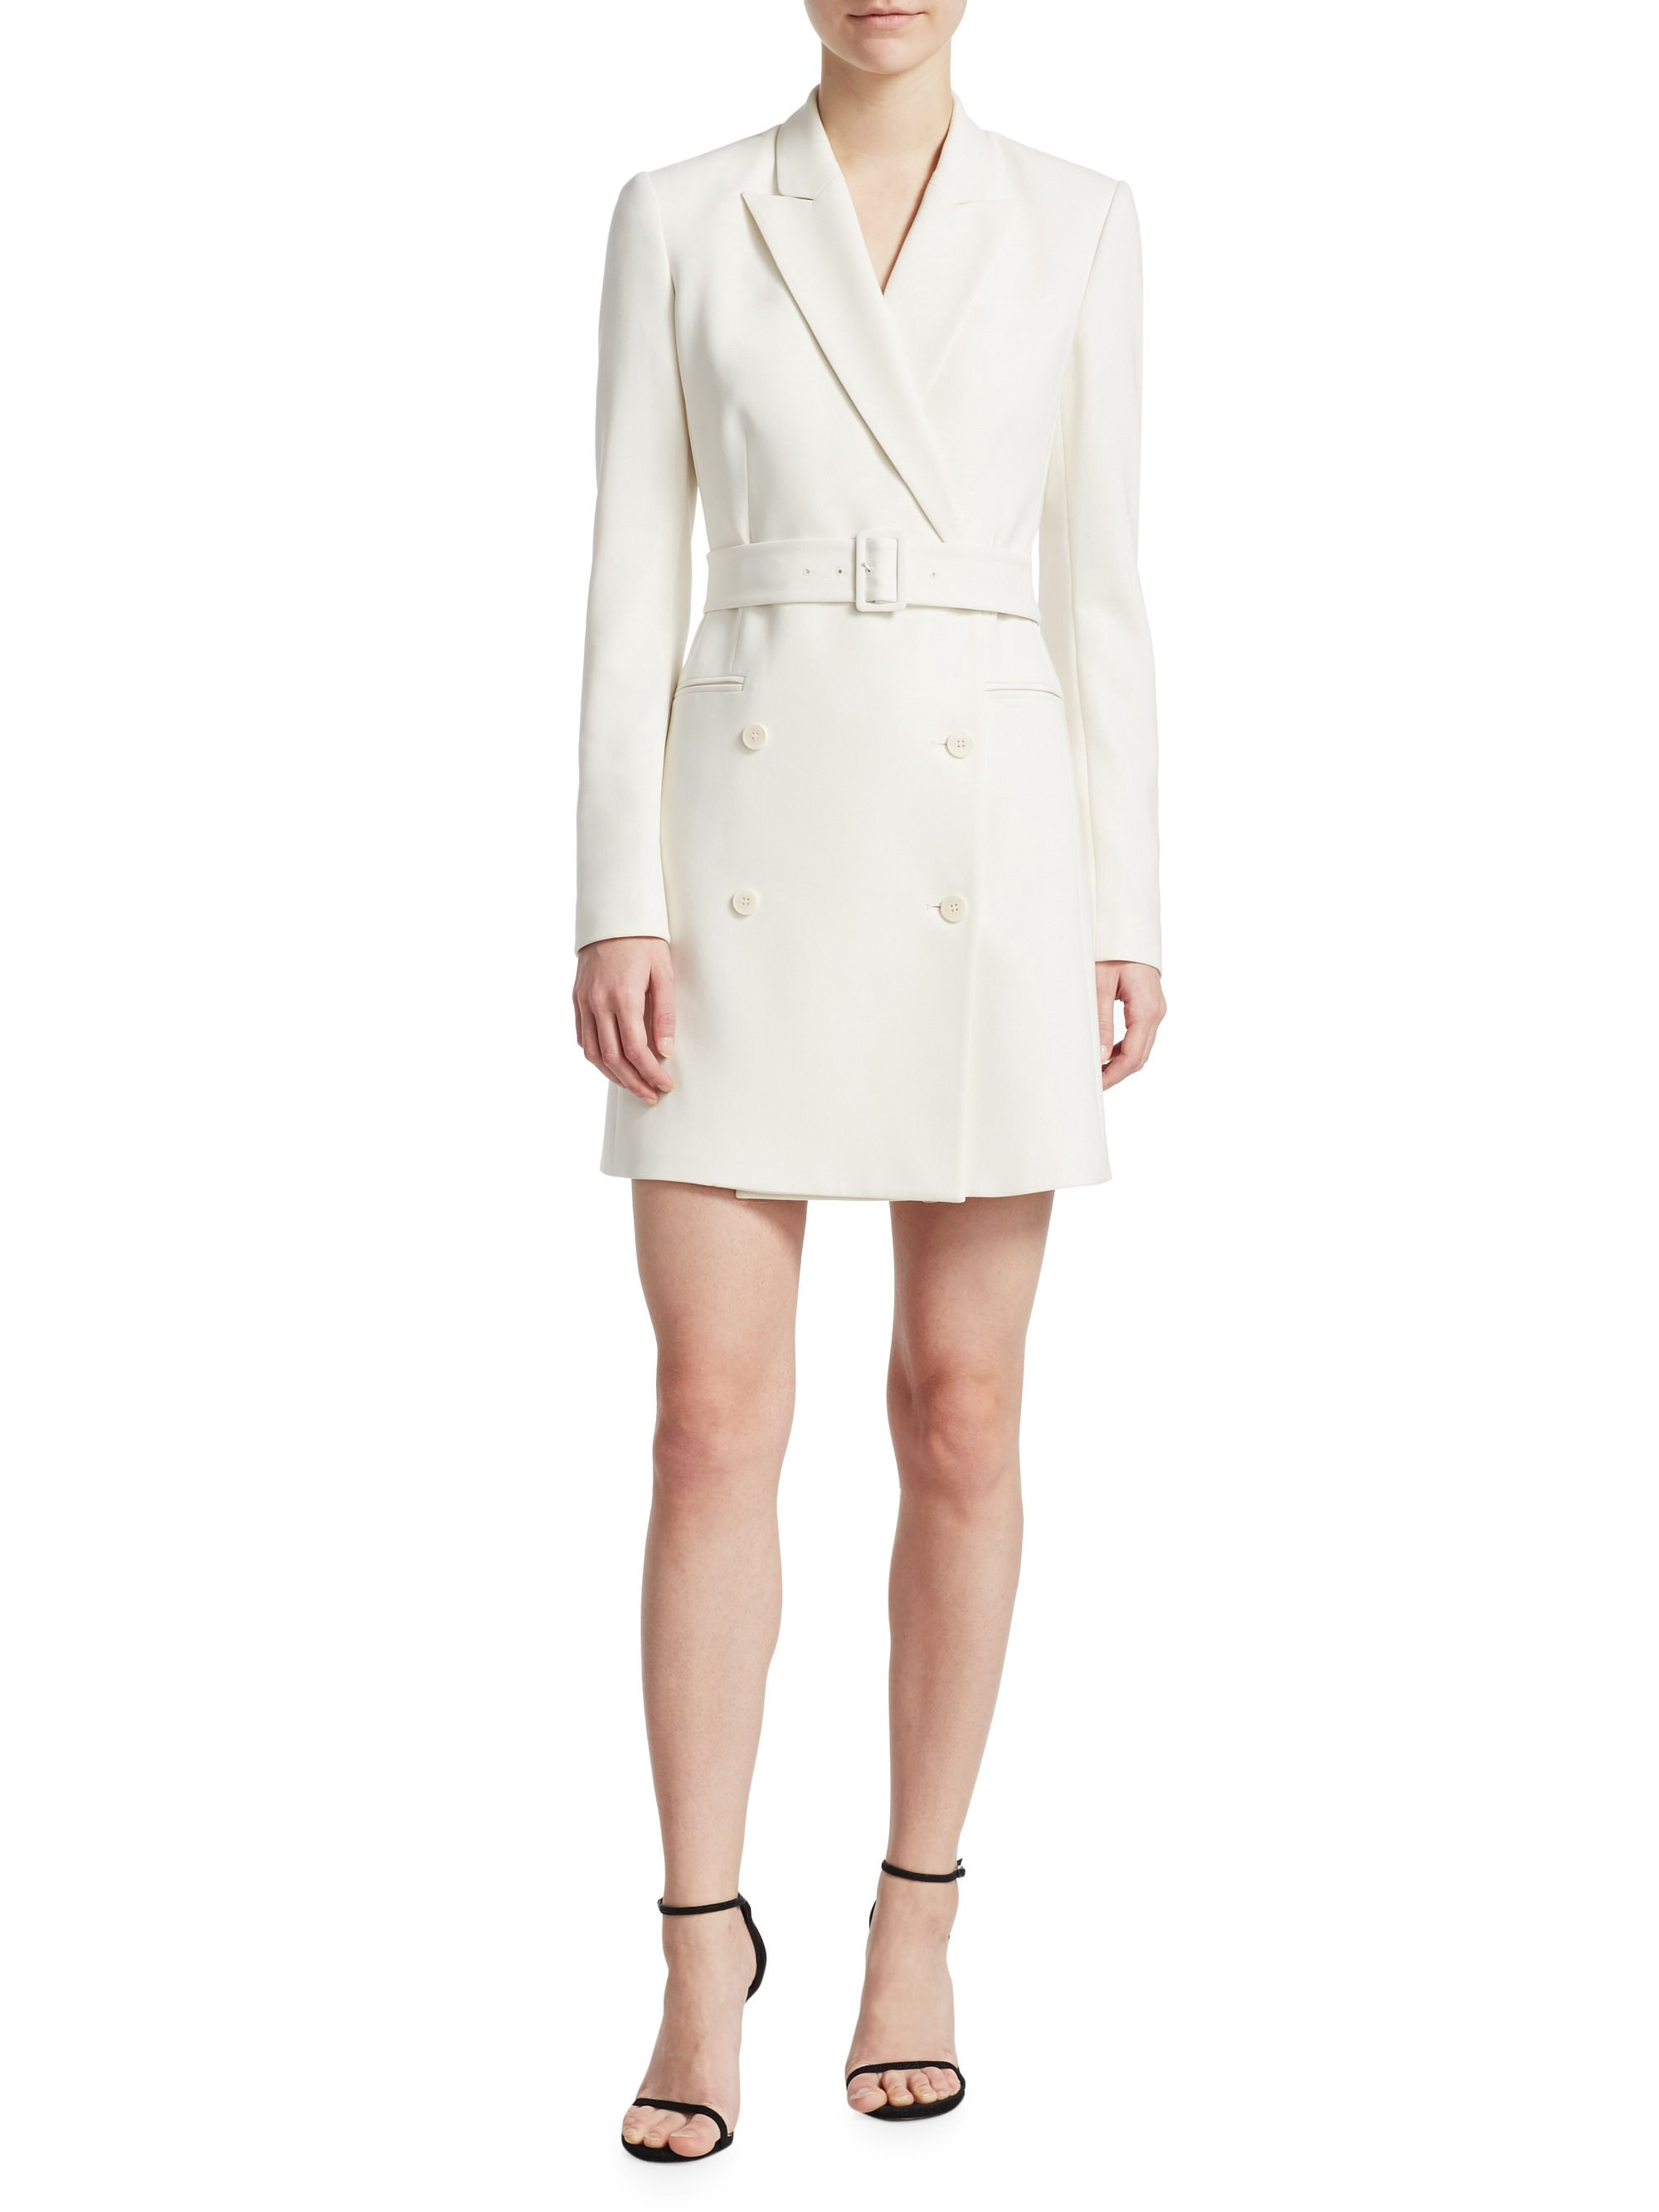 42375973ad6d5 Admiral Crepe Blazer Dress by Theory | Products | Blazer dress ...